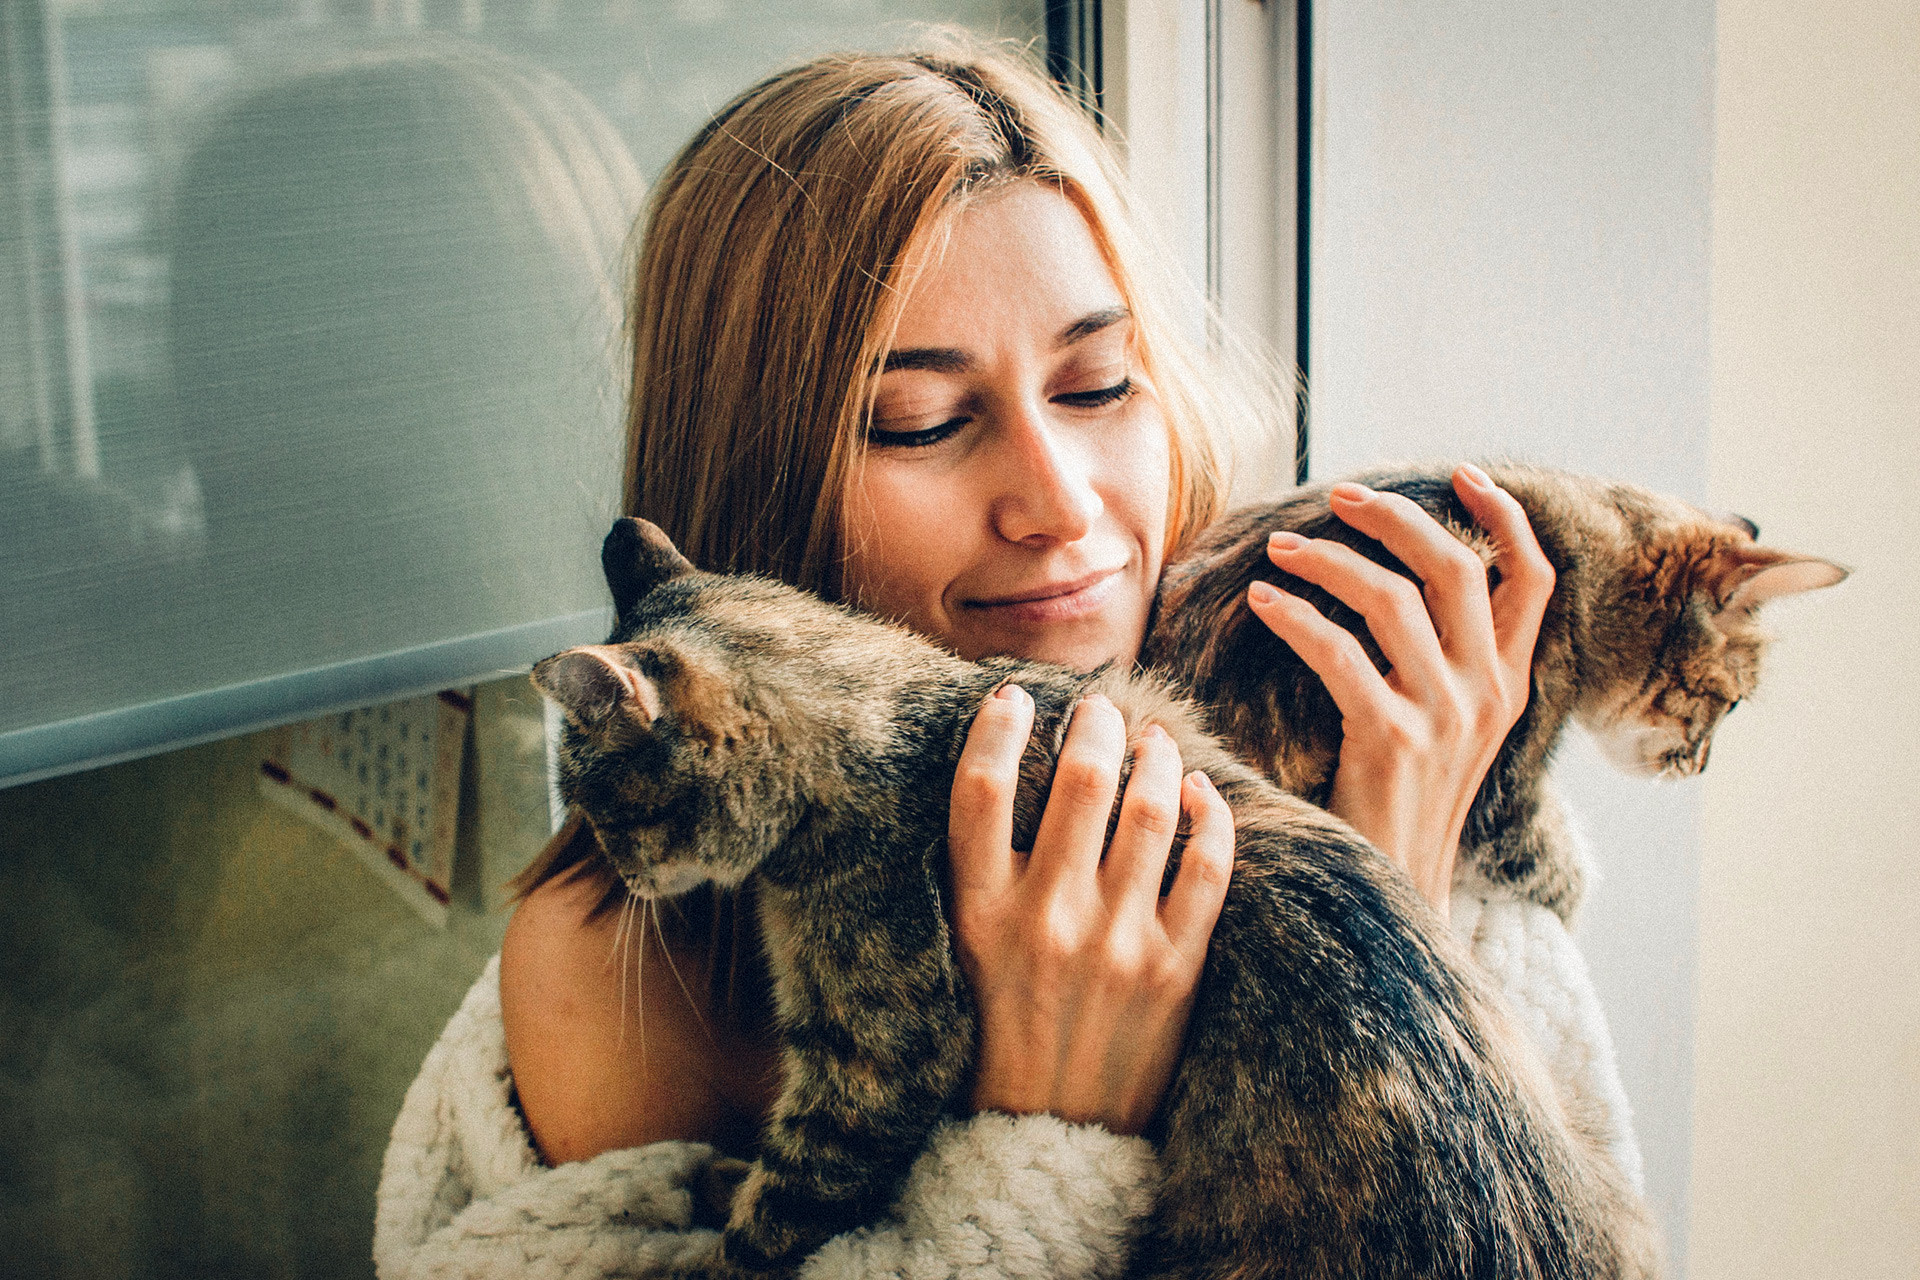 Folklore has widely popularized the following images: A woman who lives alone has many cats (the more cats, the more the situation is out of control).